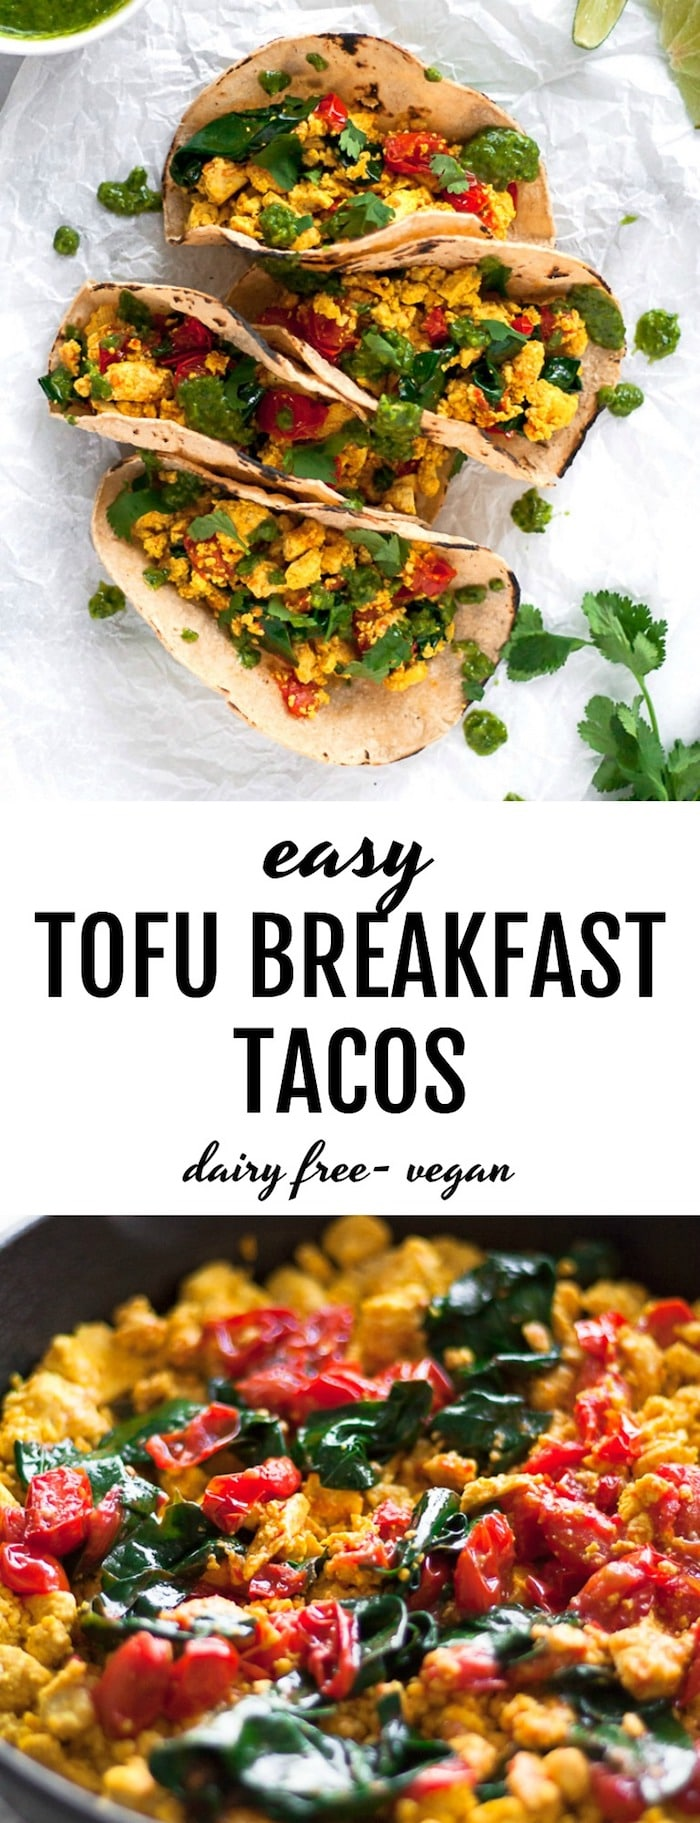 Easy Tofu Breakfast Tacos made with a simple and tasty tofu scramble #vegan | thealmondeater.com